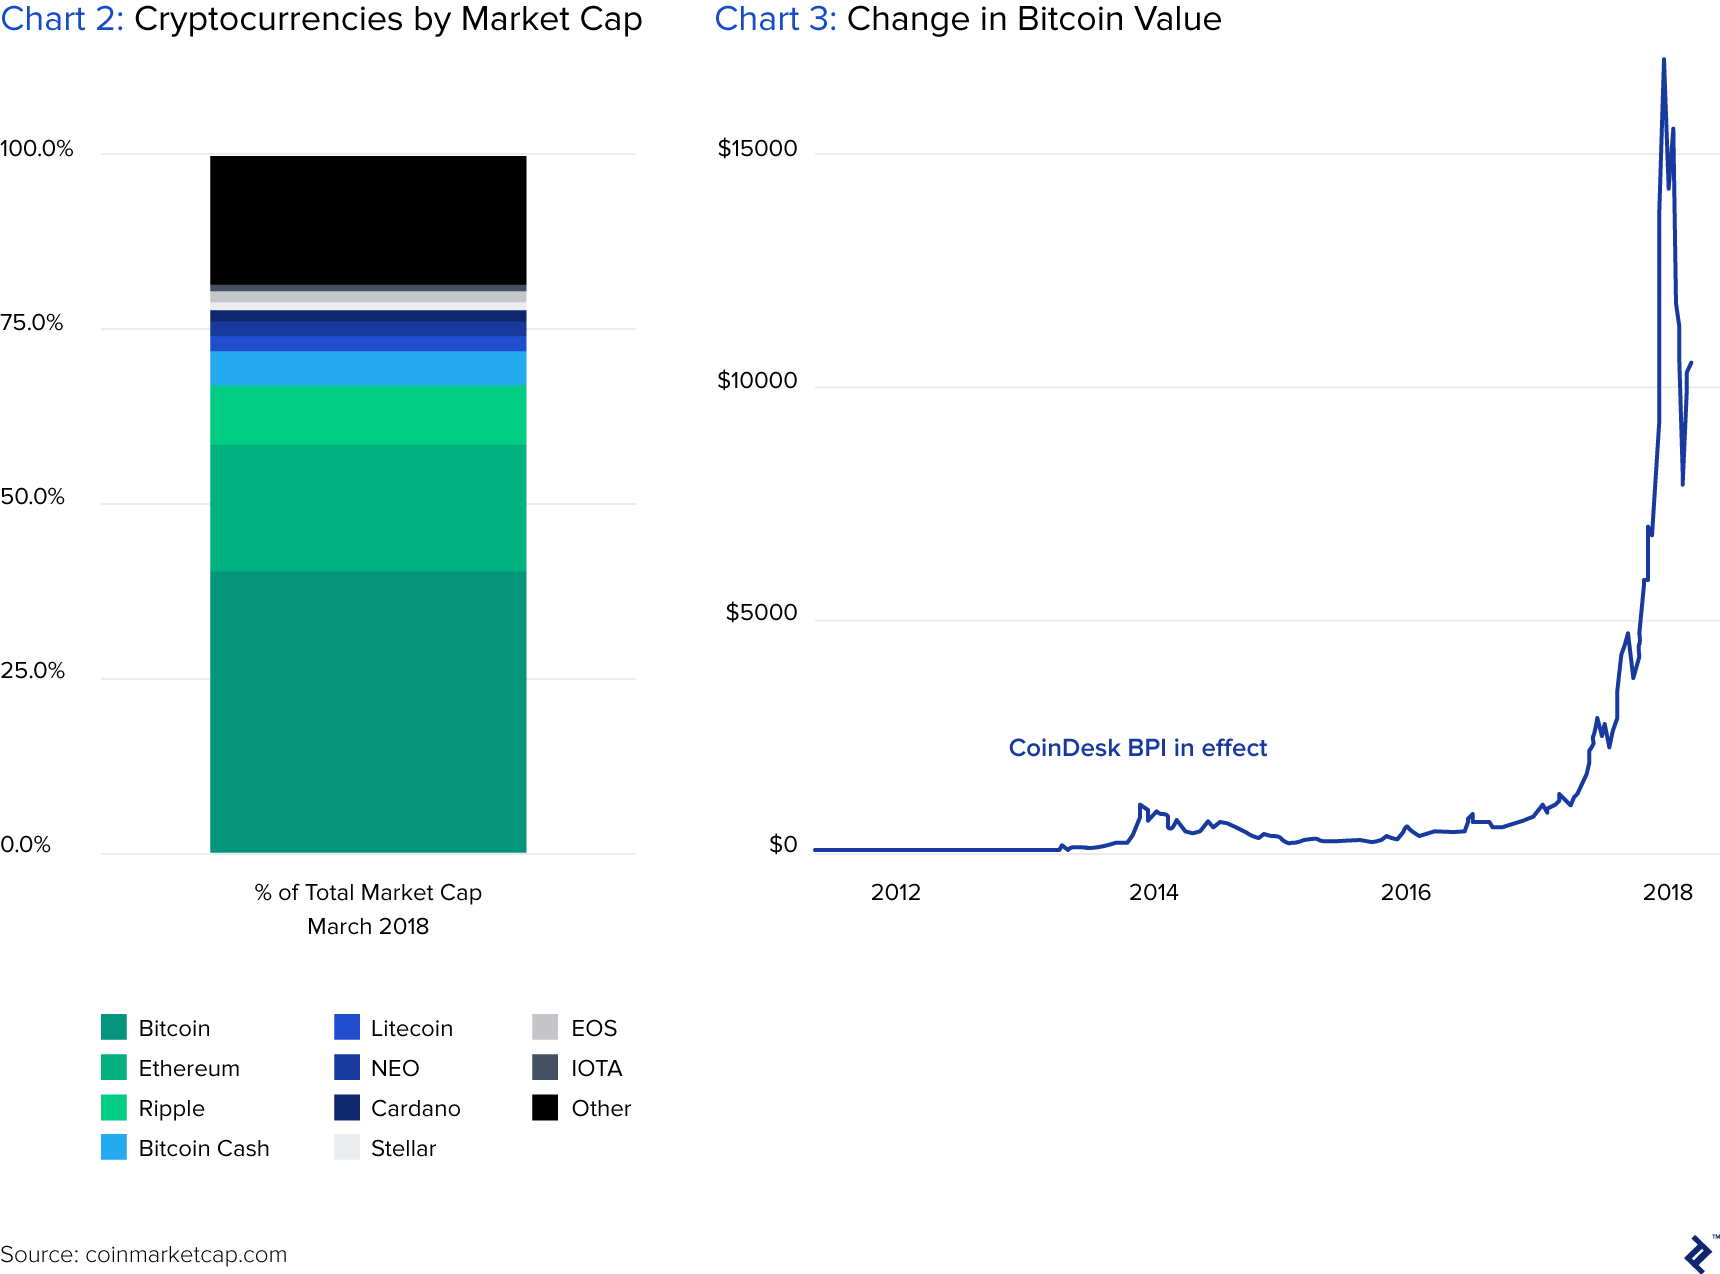 Chart 2: Cryptocurrencies by Market Cap, and Chart 3: Change in Bitcoin Value